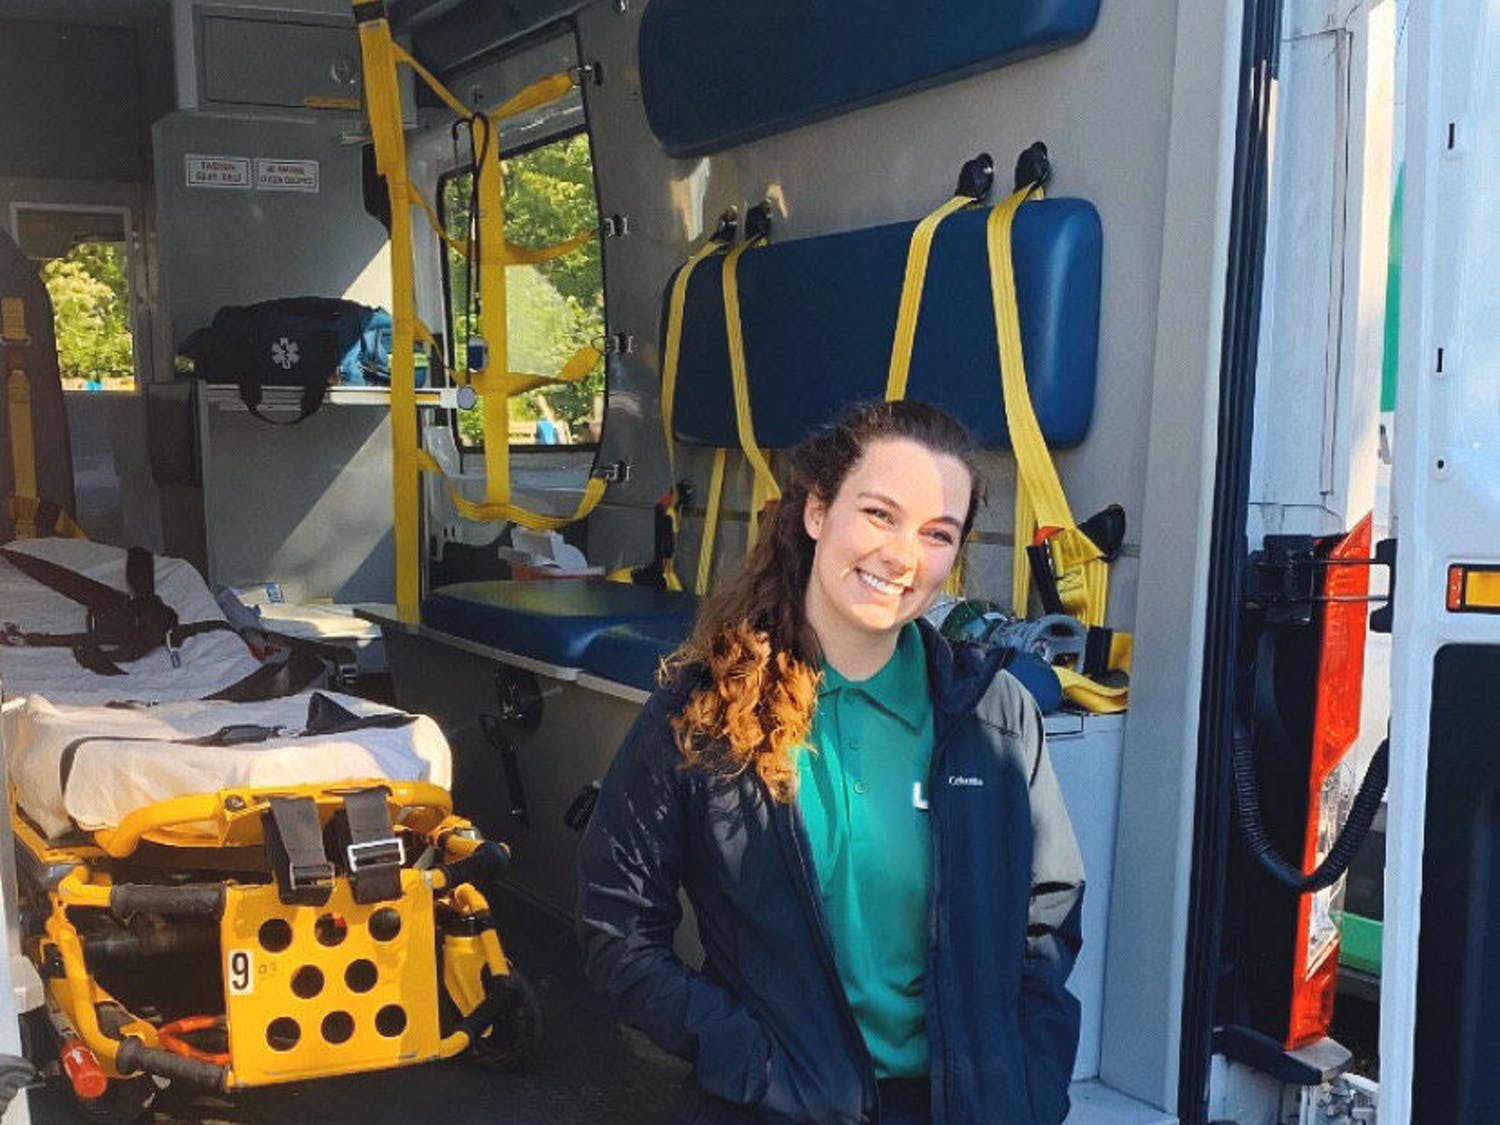 UF Gator Band member and EMT Lauren Mizell risks contracting COVID-19 while transporting patients on an ambulance.